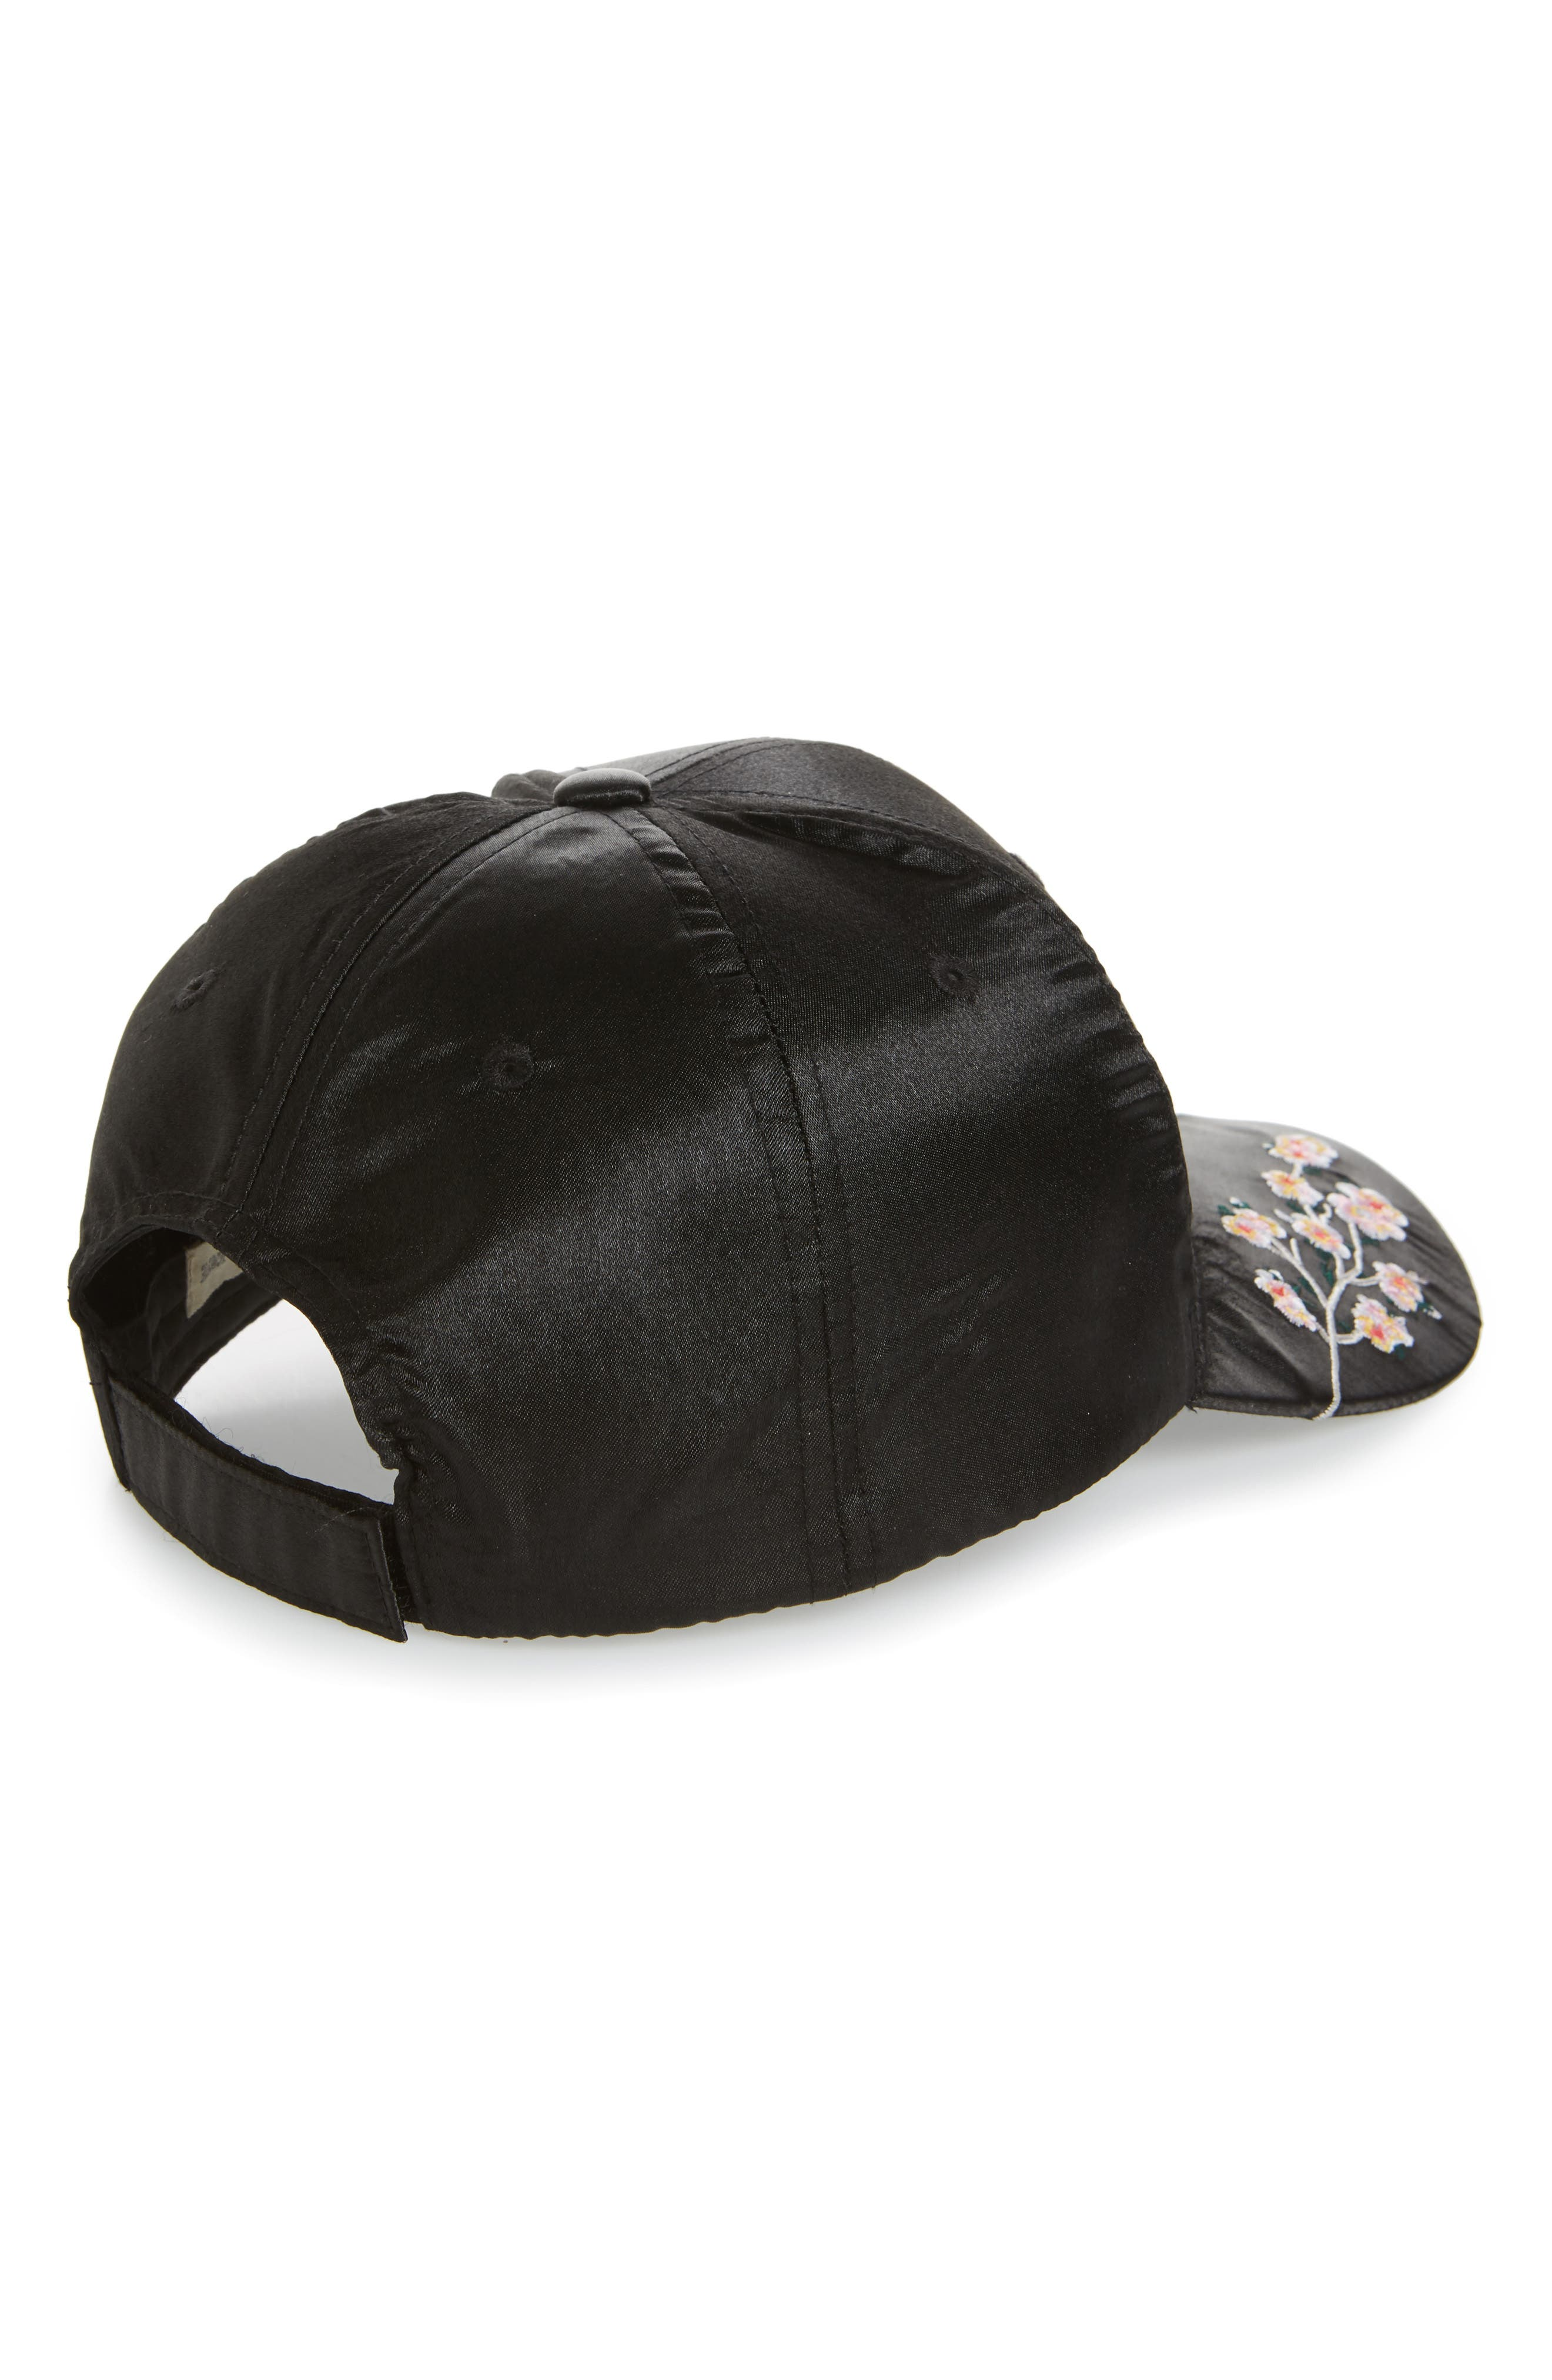 Embroidered Satin Adjustable Ball Cap,                             Alternate thumbnail 2, color,                             001